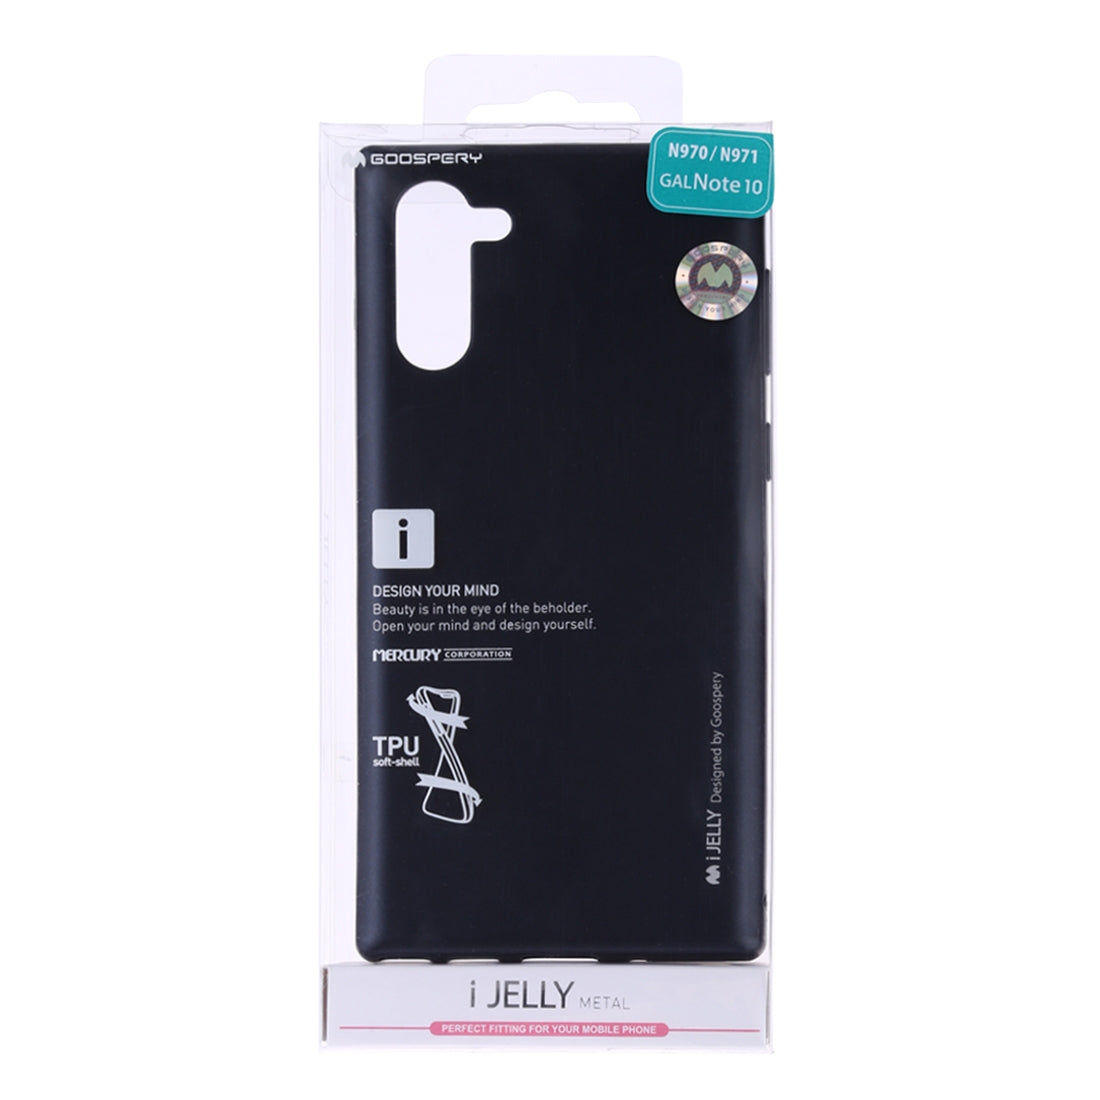 GOOSPERY i-JELLY TPU Shockproof and Scratch Case for Galaxy Note 10(Black)